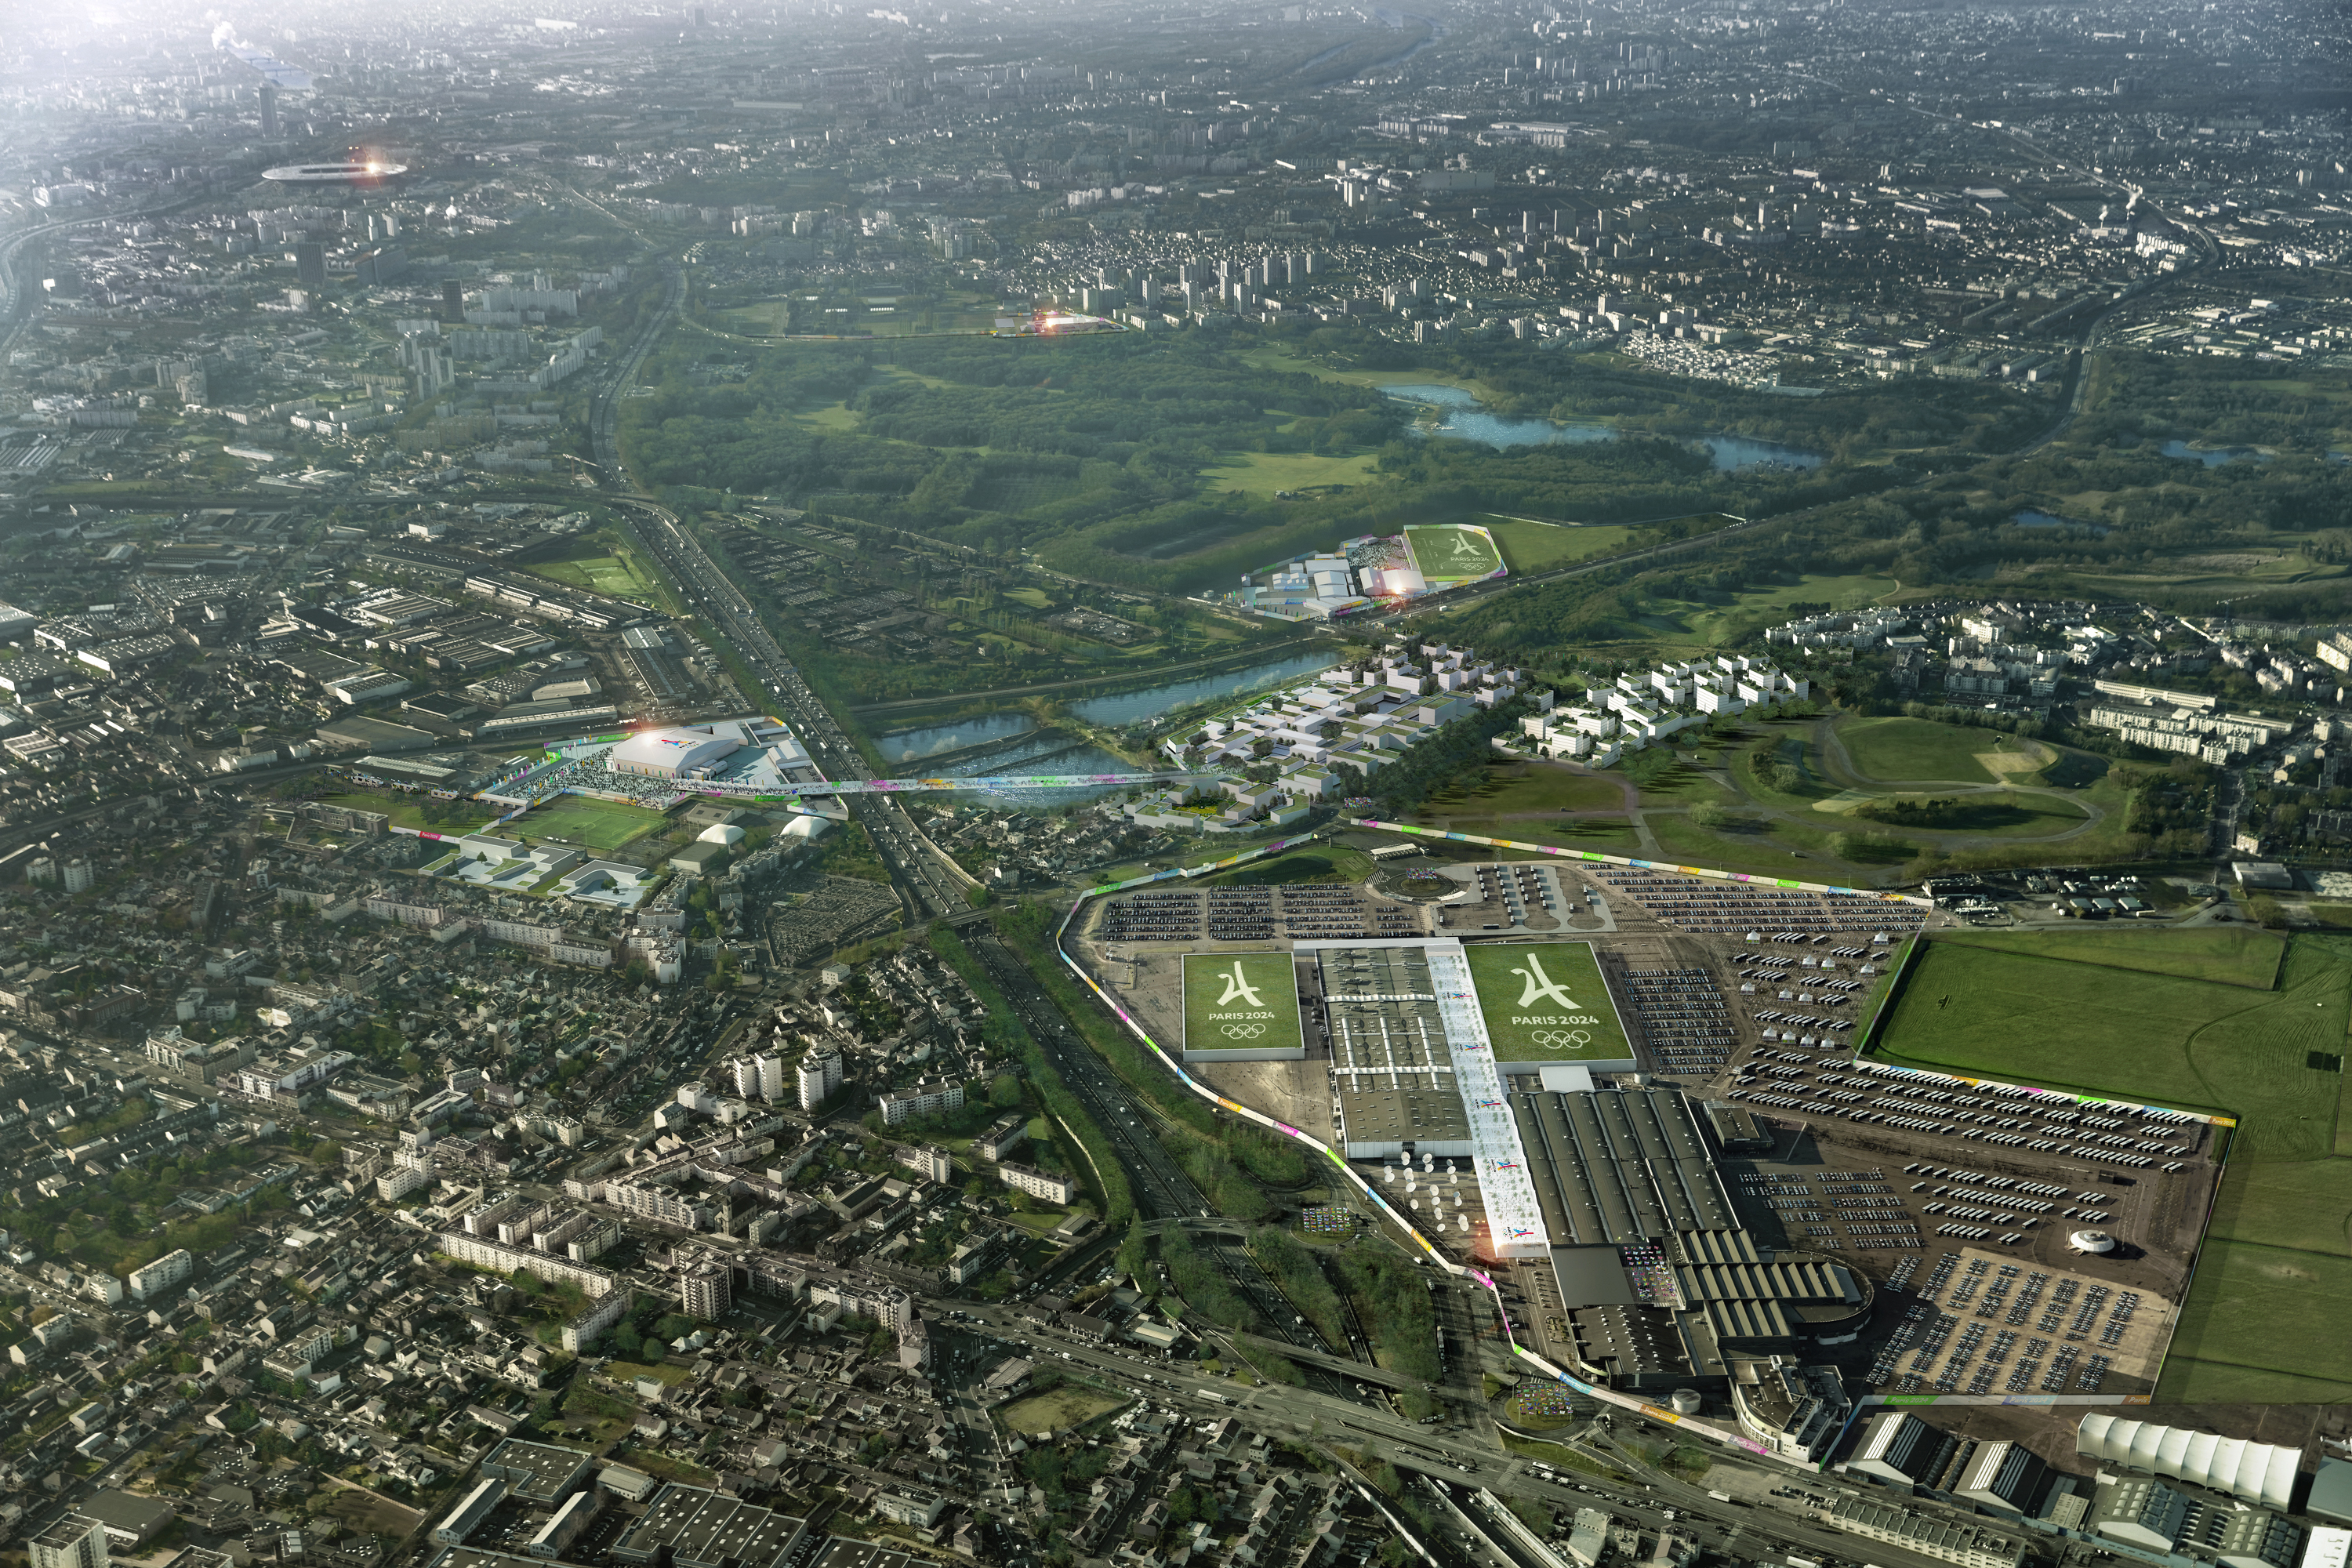 paris_2024_-_le_bourget.jpg